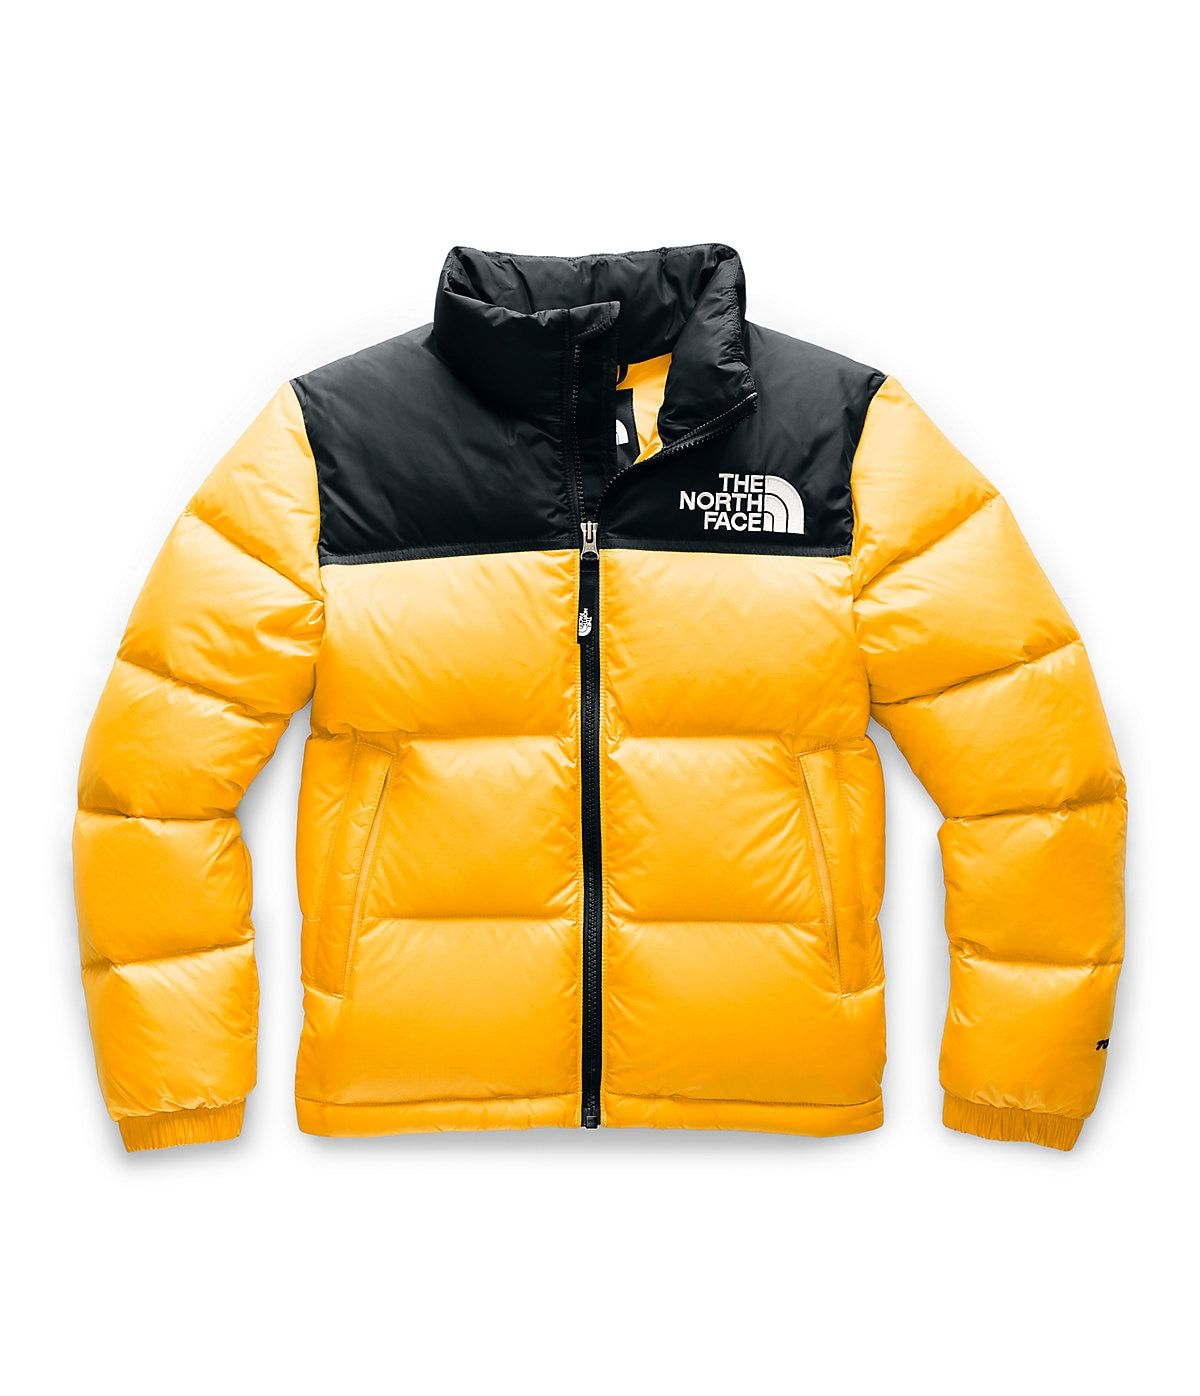 Youth 1996 Retro Nuptse Jacket The North Face In 2021 1996 Retro Nuptse Jacket North Face Puffer Jacket Retro Nuptse Jacket [ 1396 x 1200 Pixel ]